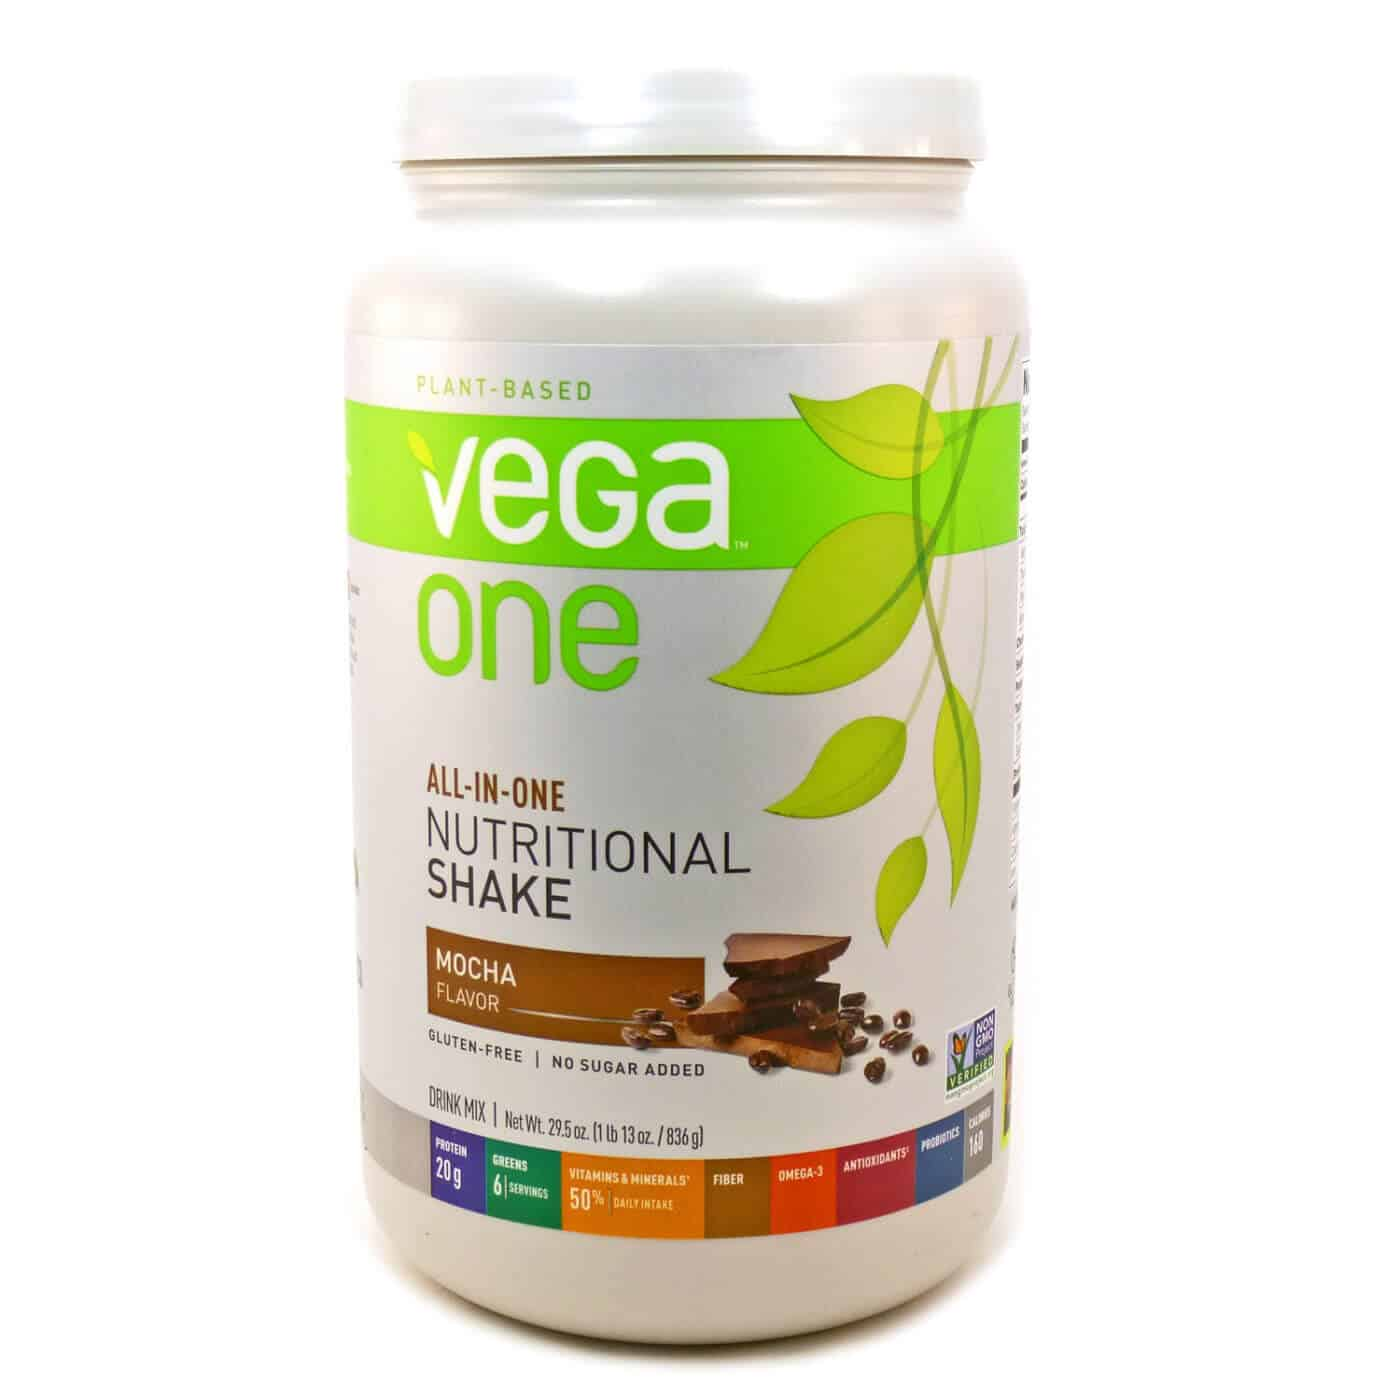 Vega one all in one nutritional shake reviews